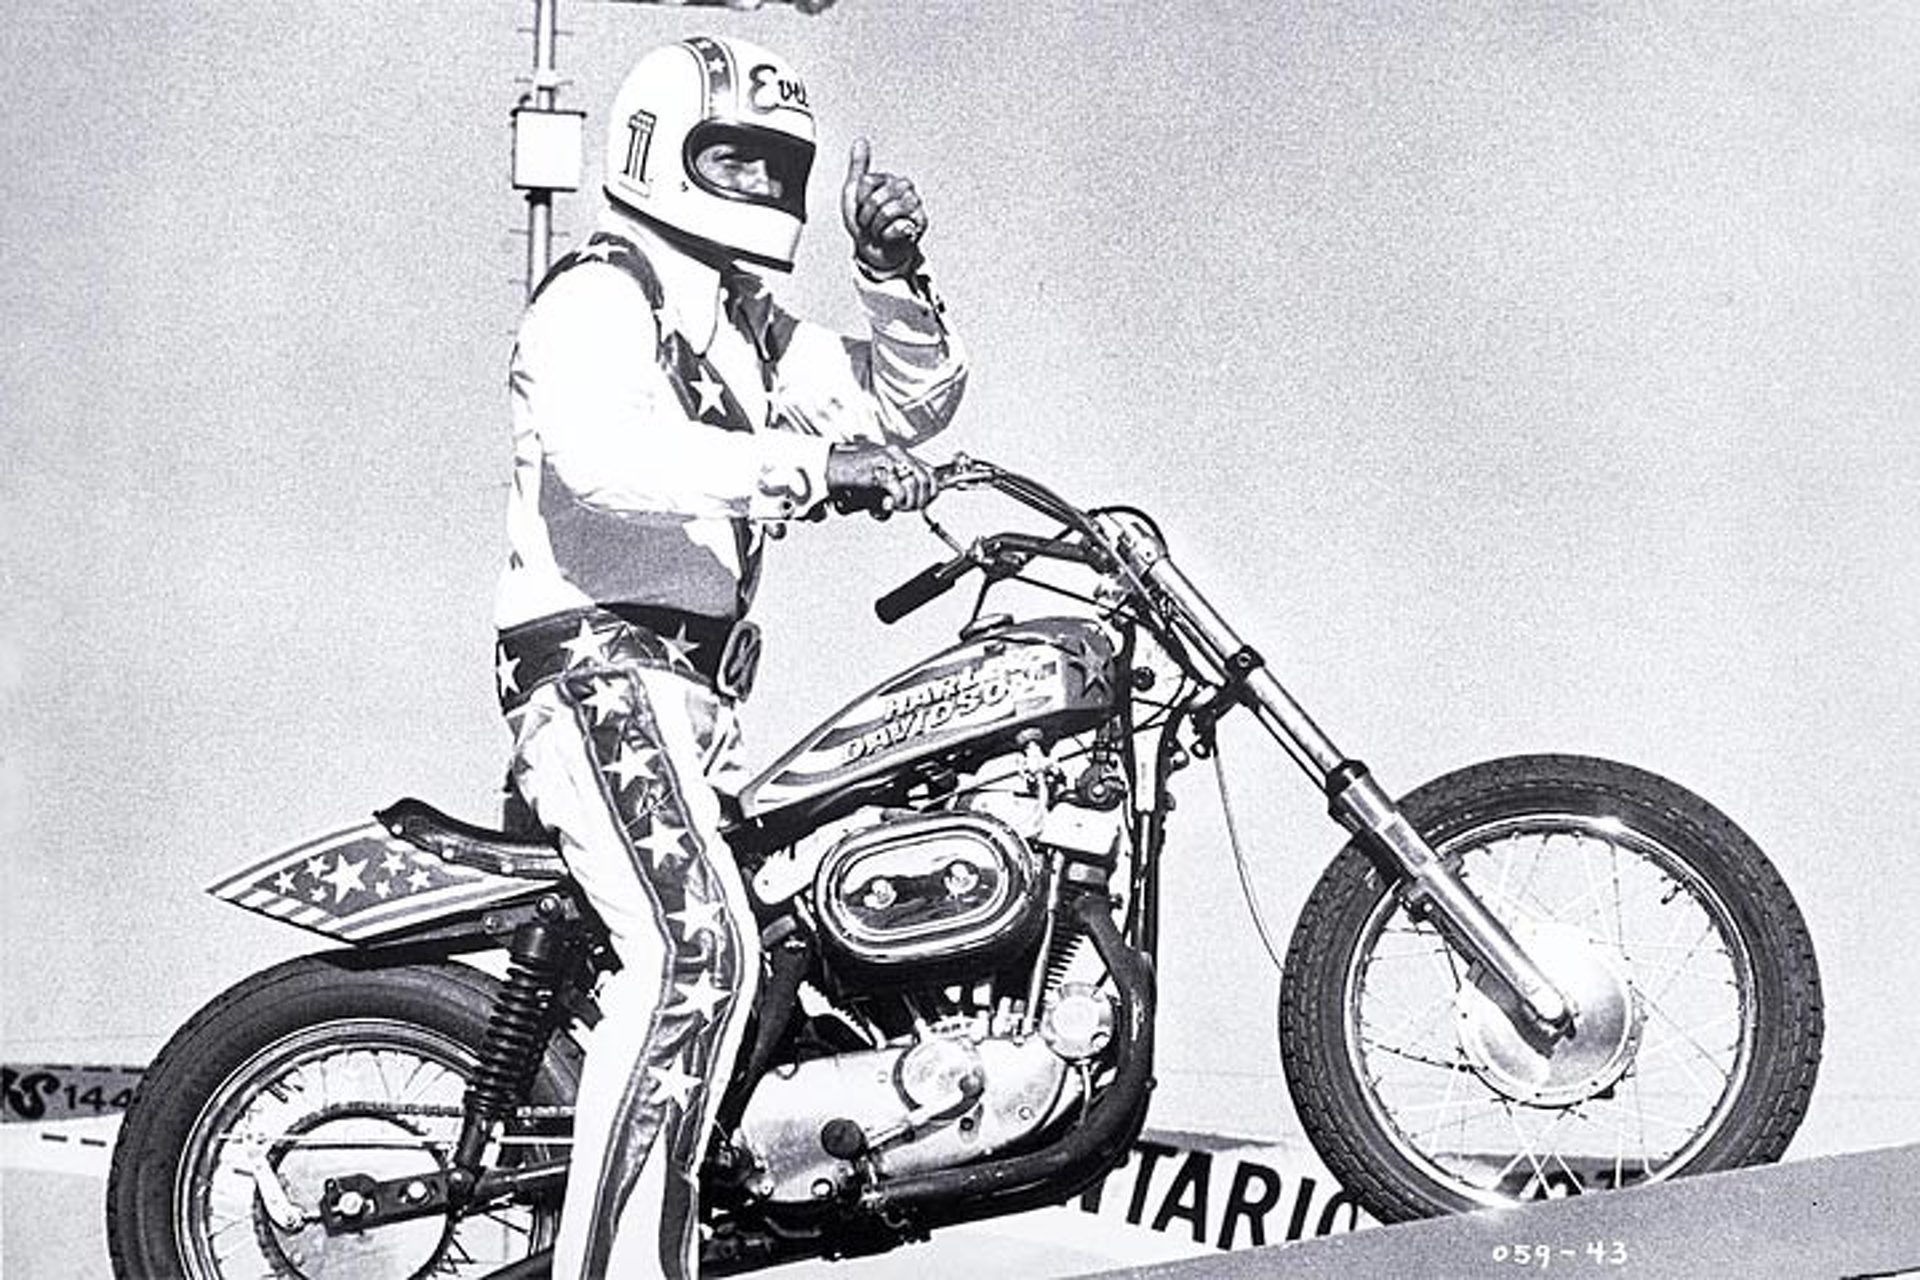 Evel Knievel Harley Davidson Chopper Photograph By Frank: Evel Knievel Motorcycle Heading To Auction—Just Don't Jump